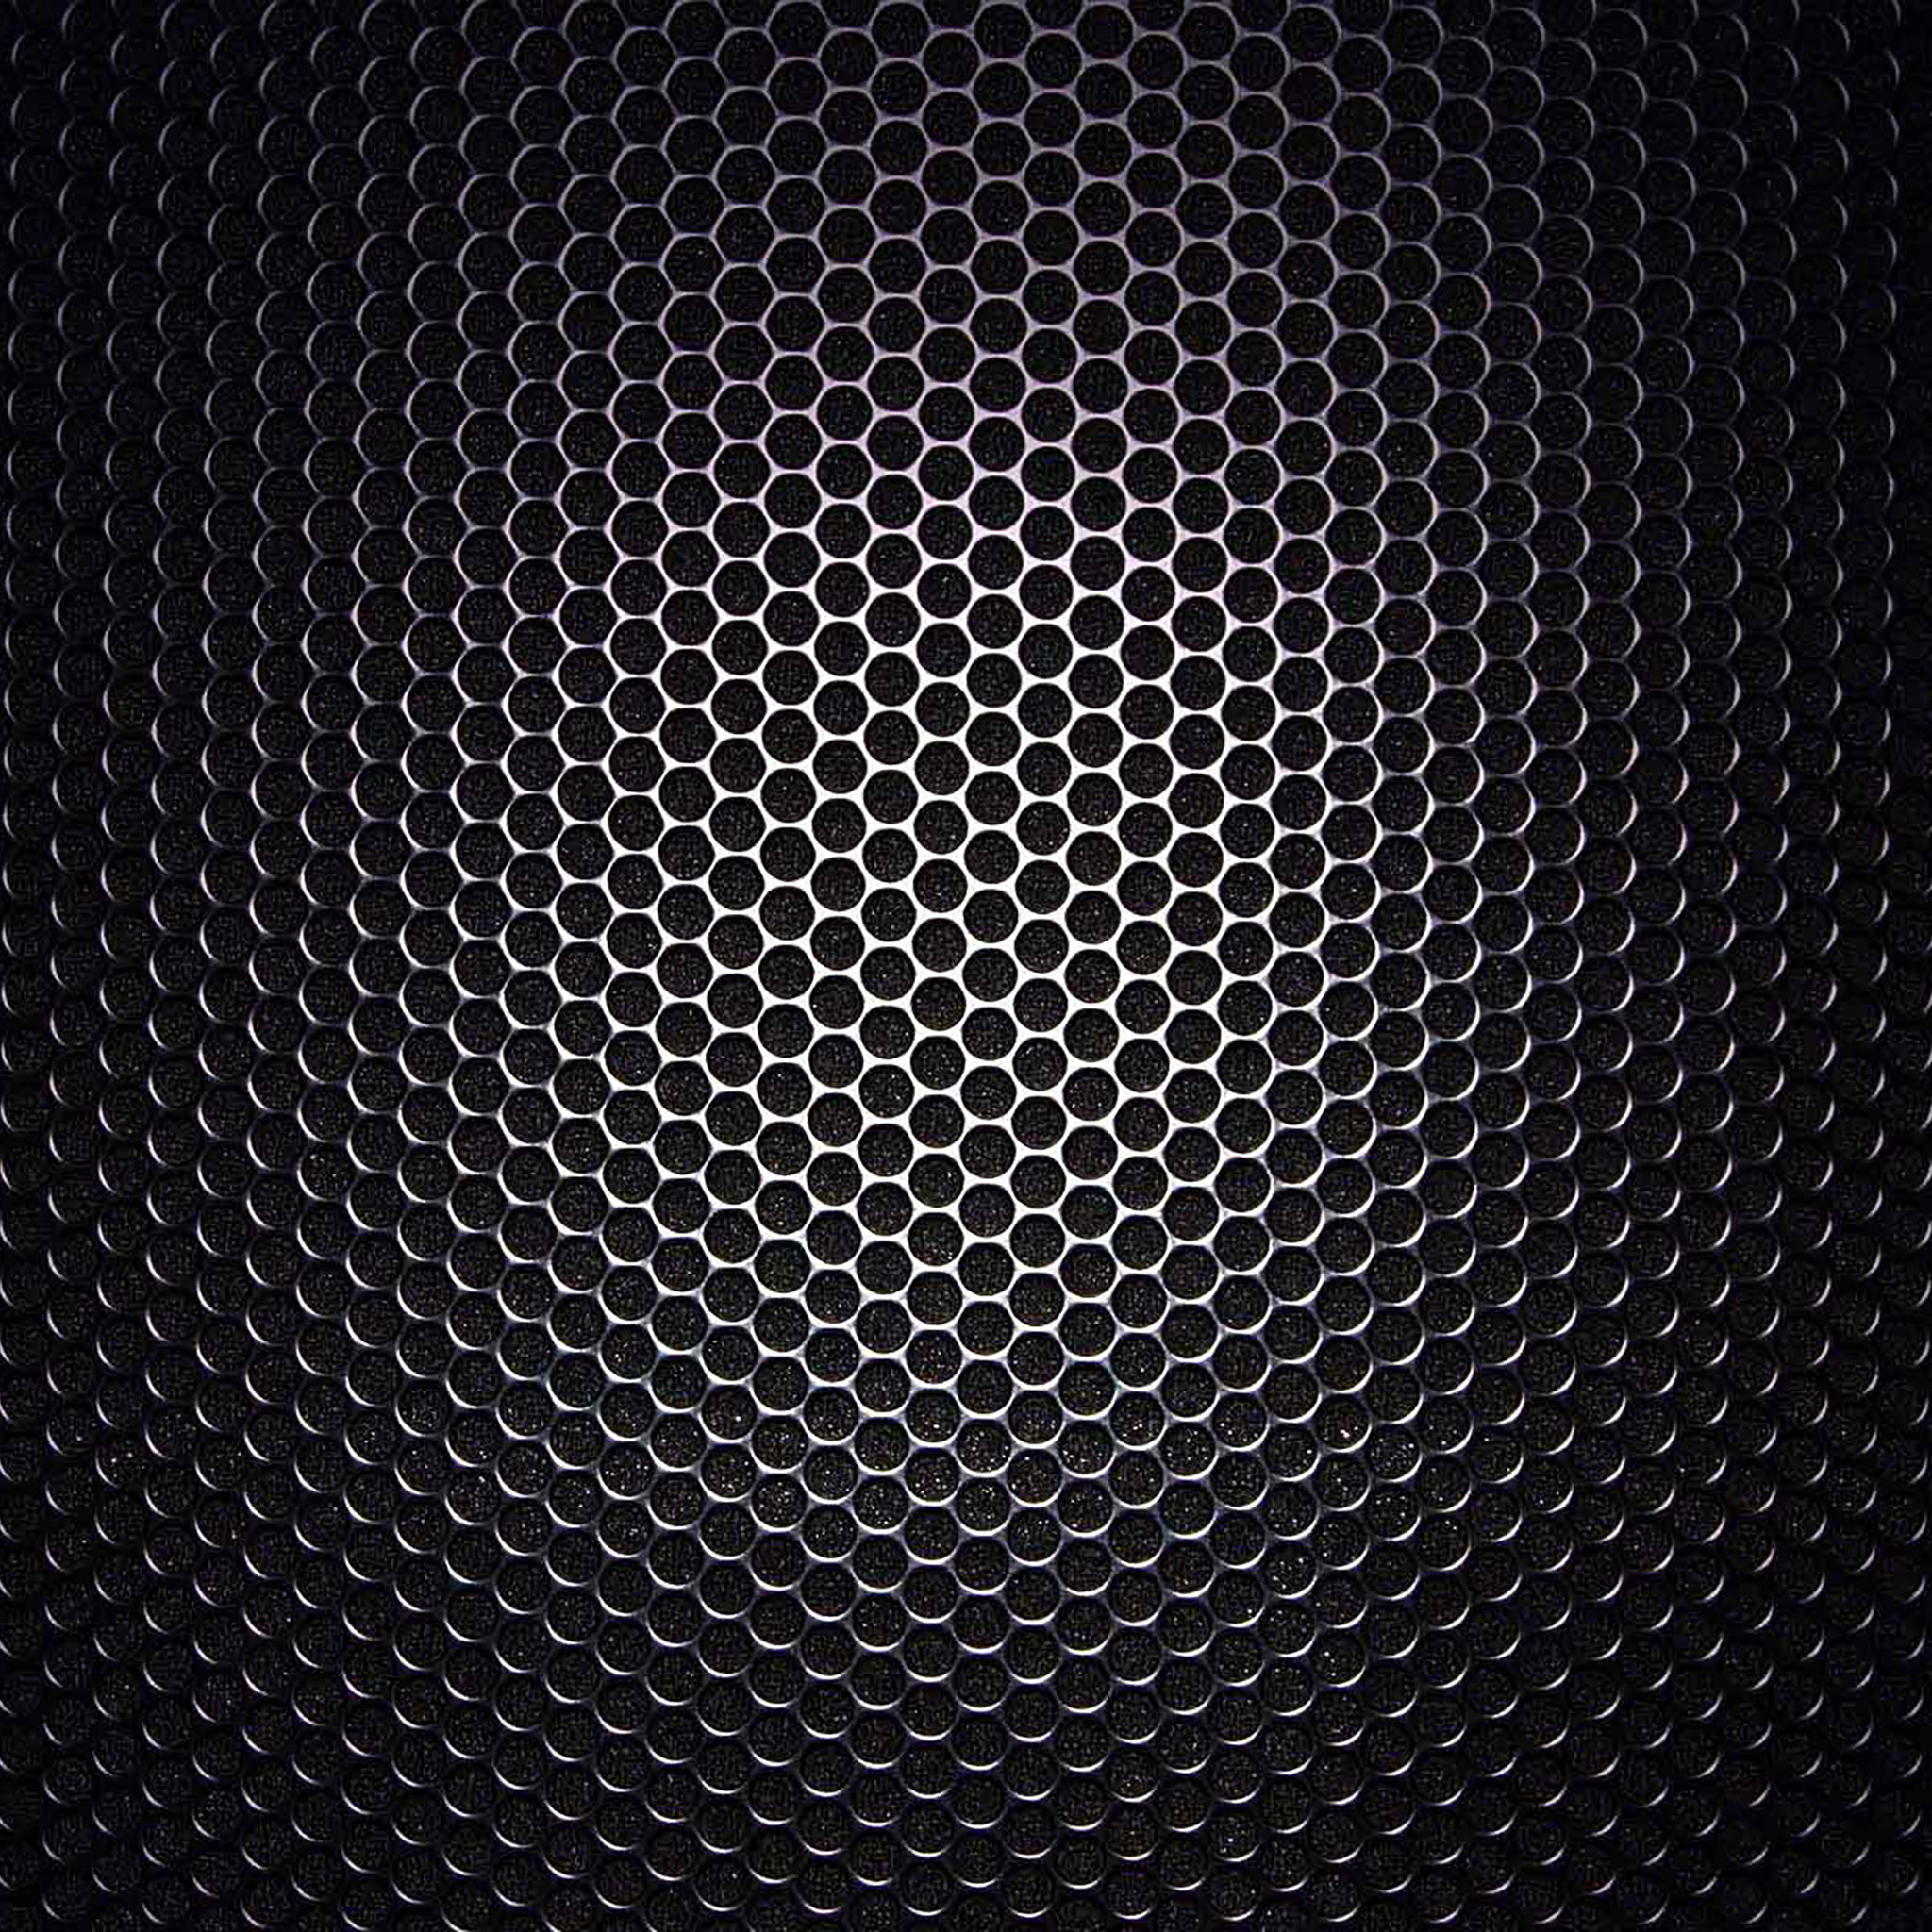 30 HD Black iPad Wallpapers